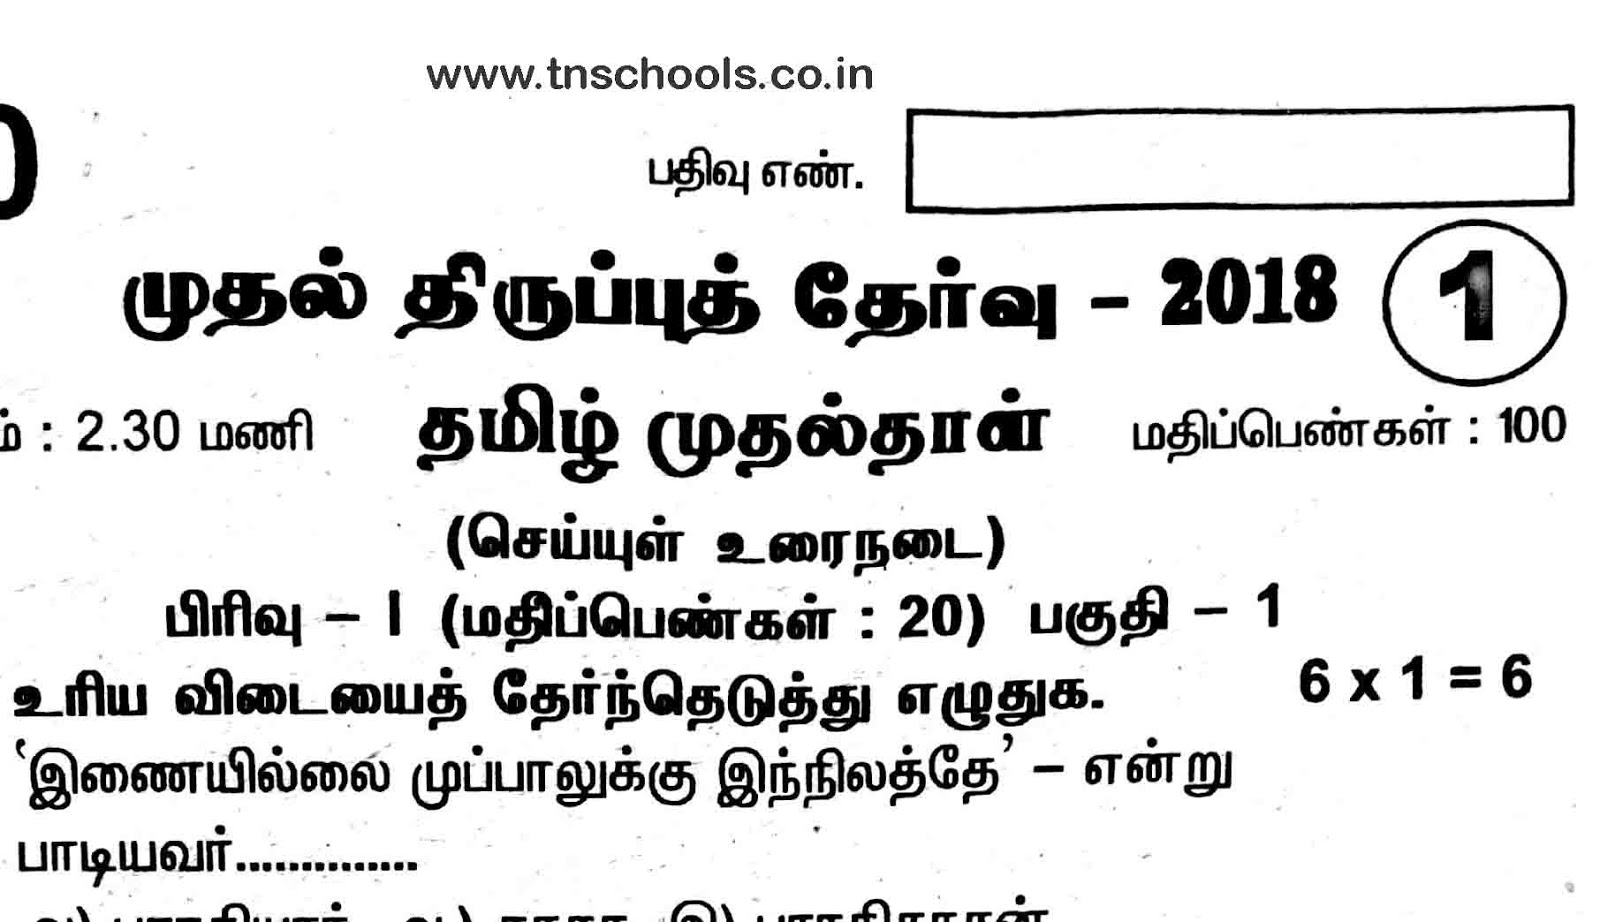 Tamil Nadu 10th std first revision exam question paper